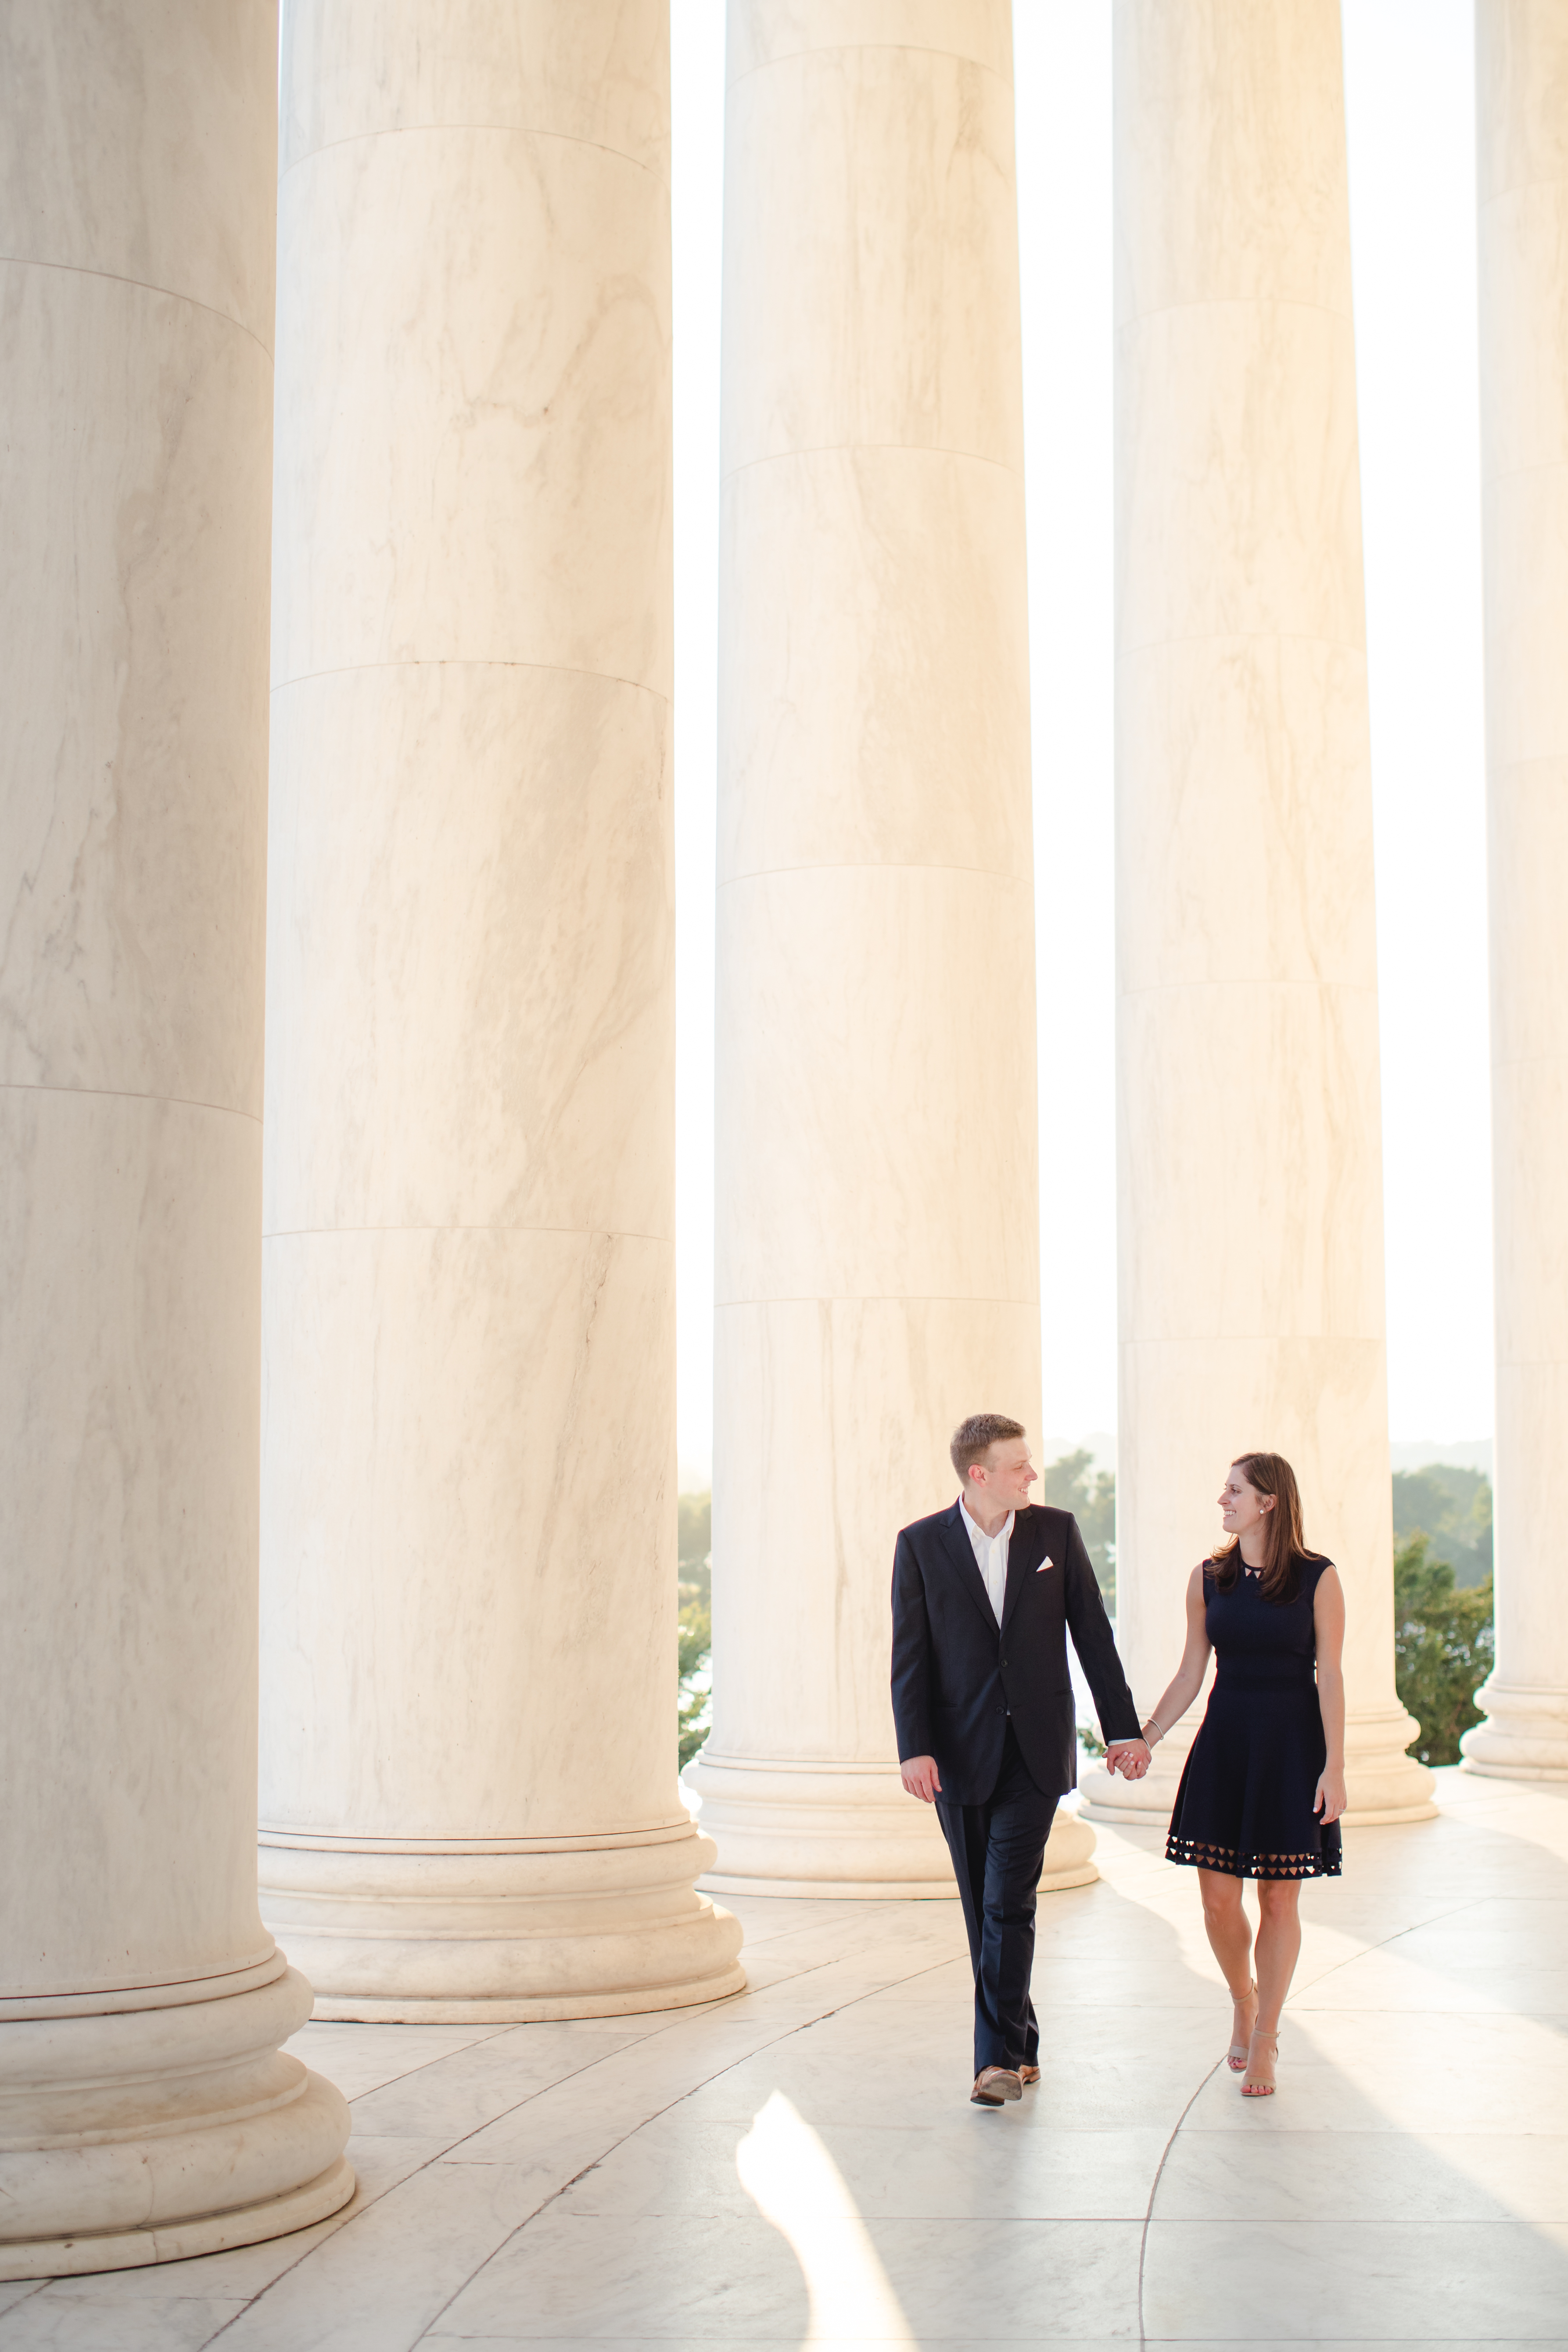 Check out this blog full of engagement photo tips and tricks for brides and grooms to use! Plus check out some of our couples and what they did to make their pictures stand out from the rest!